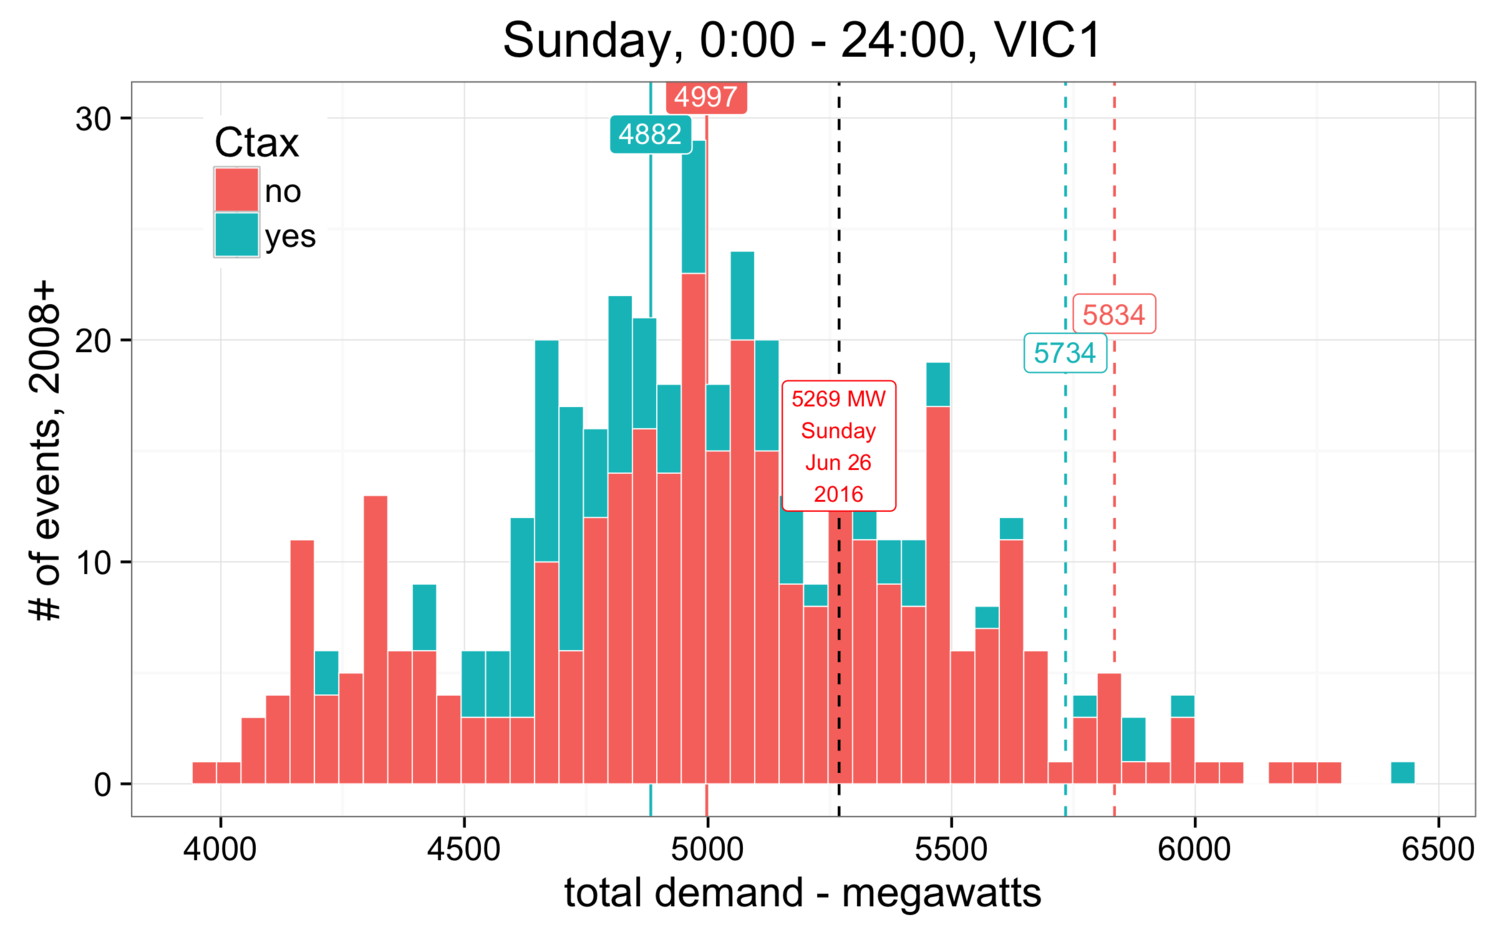 Victorian Average Sunday Demand in Megawatts